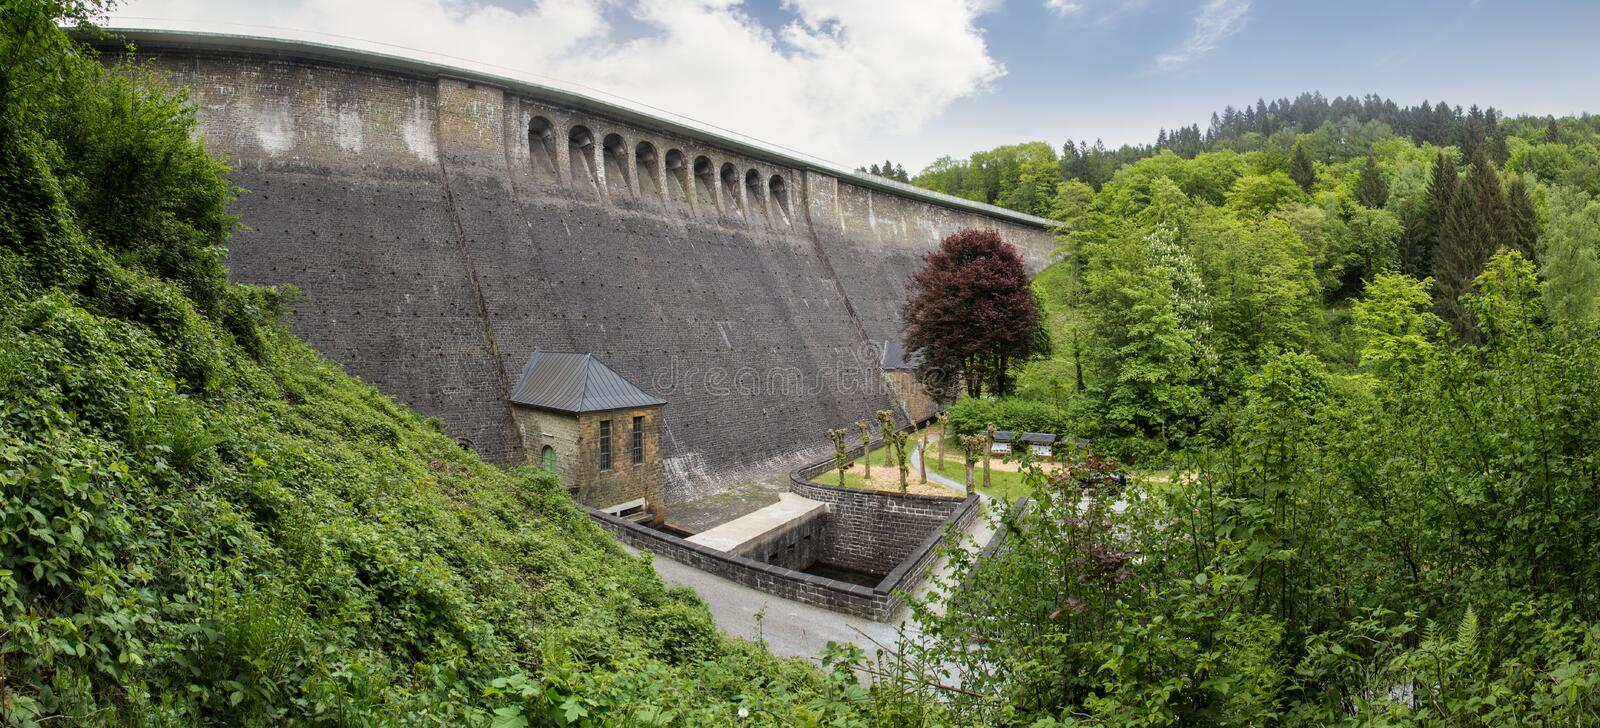 aggertalsperre dam germany high definition panorama stock photography